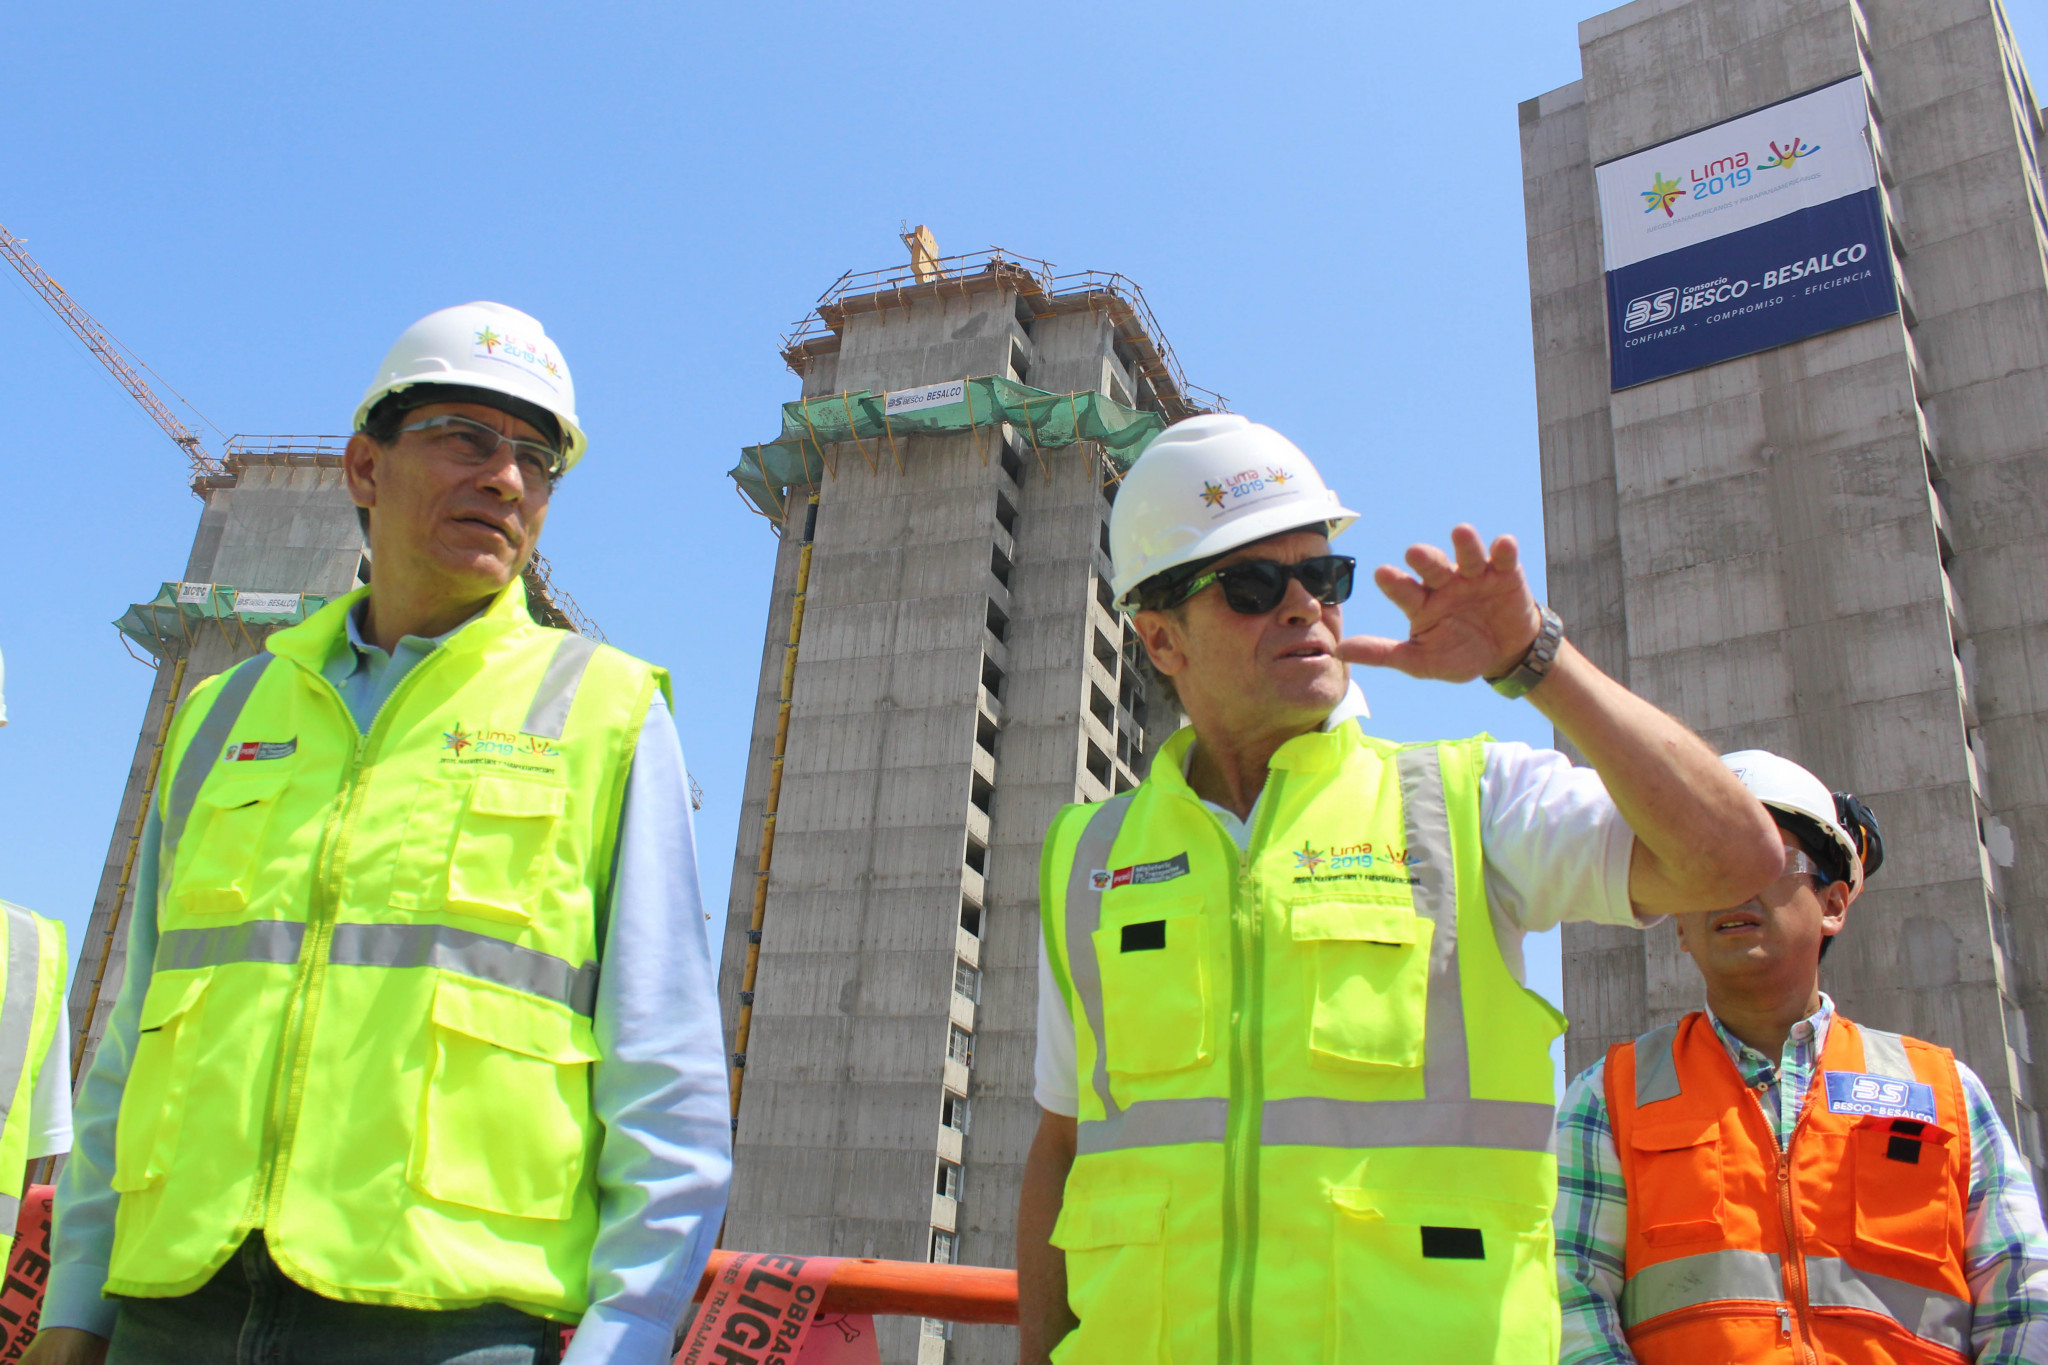 Lima 2019 President Carlos Neuhaus, right, guided President Martín Vizcarra Cornejo, left, around the Pan American Village as they inspected the progress so far ©Lima 2019